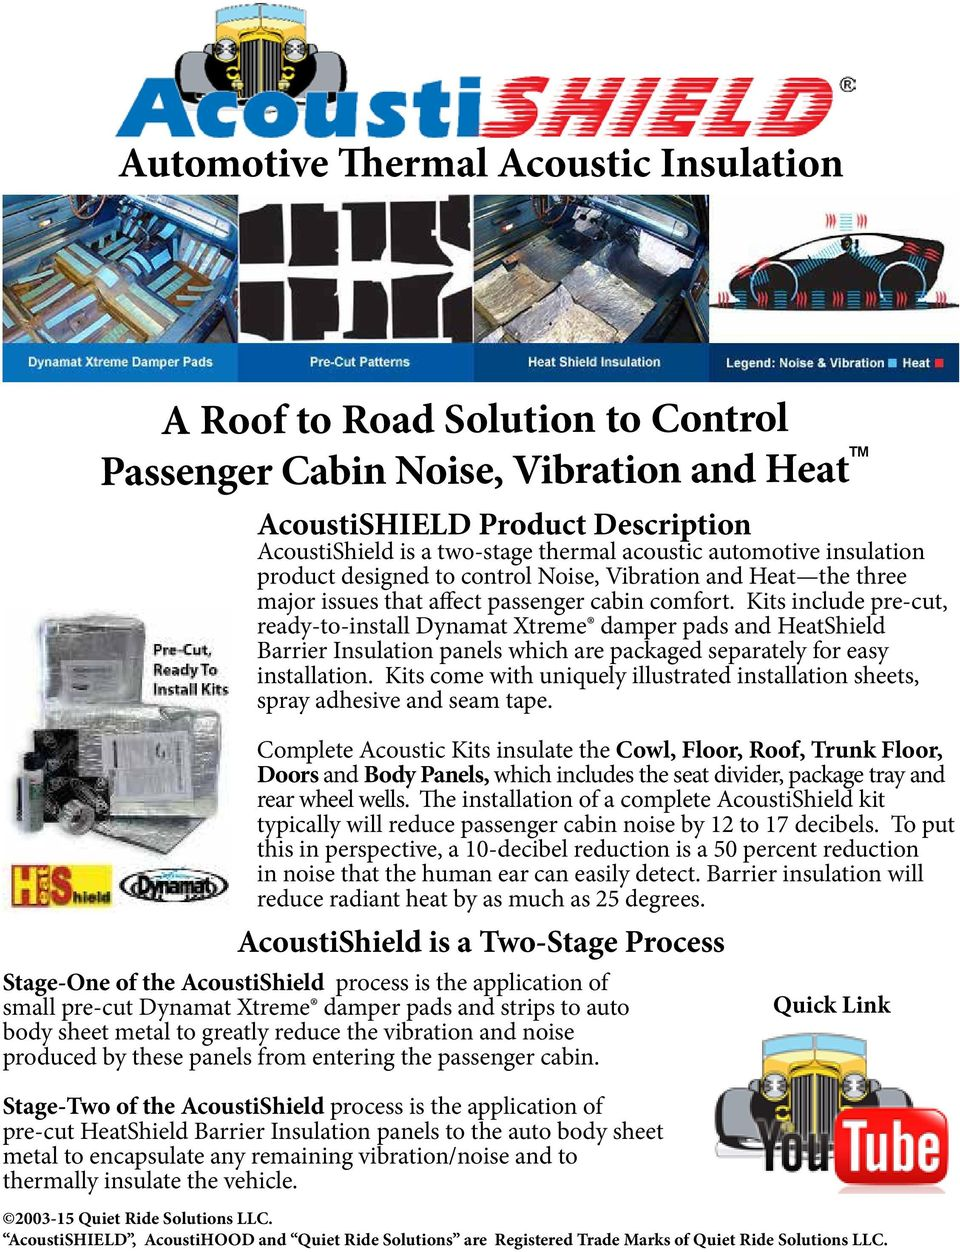 Automotive Thermal Acoustic Insulation Roof to Road